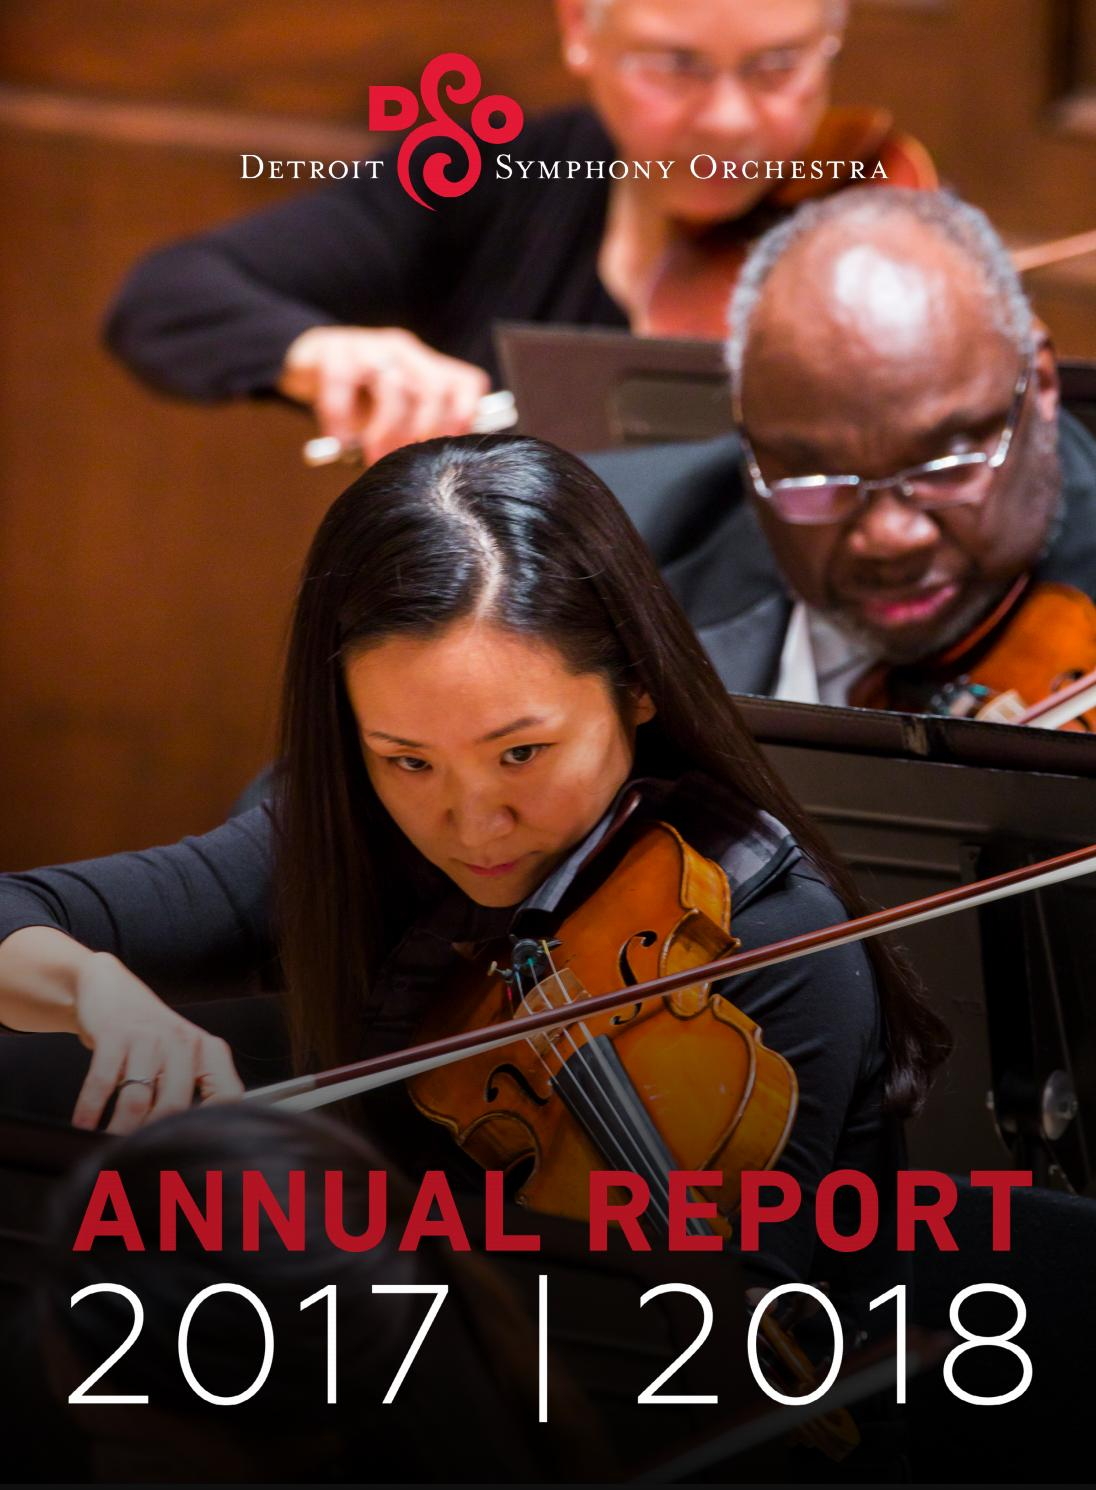 DSO Annual Report 2017-2018 by Detroit Symphony Orchestra - issuu